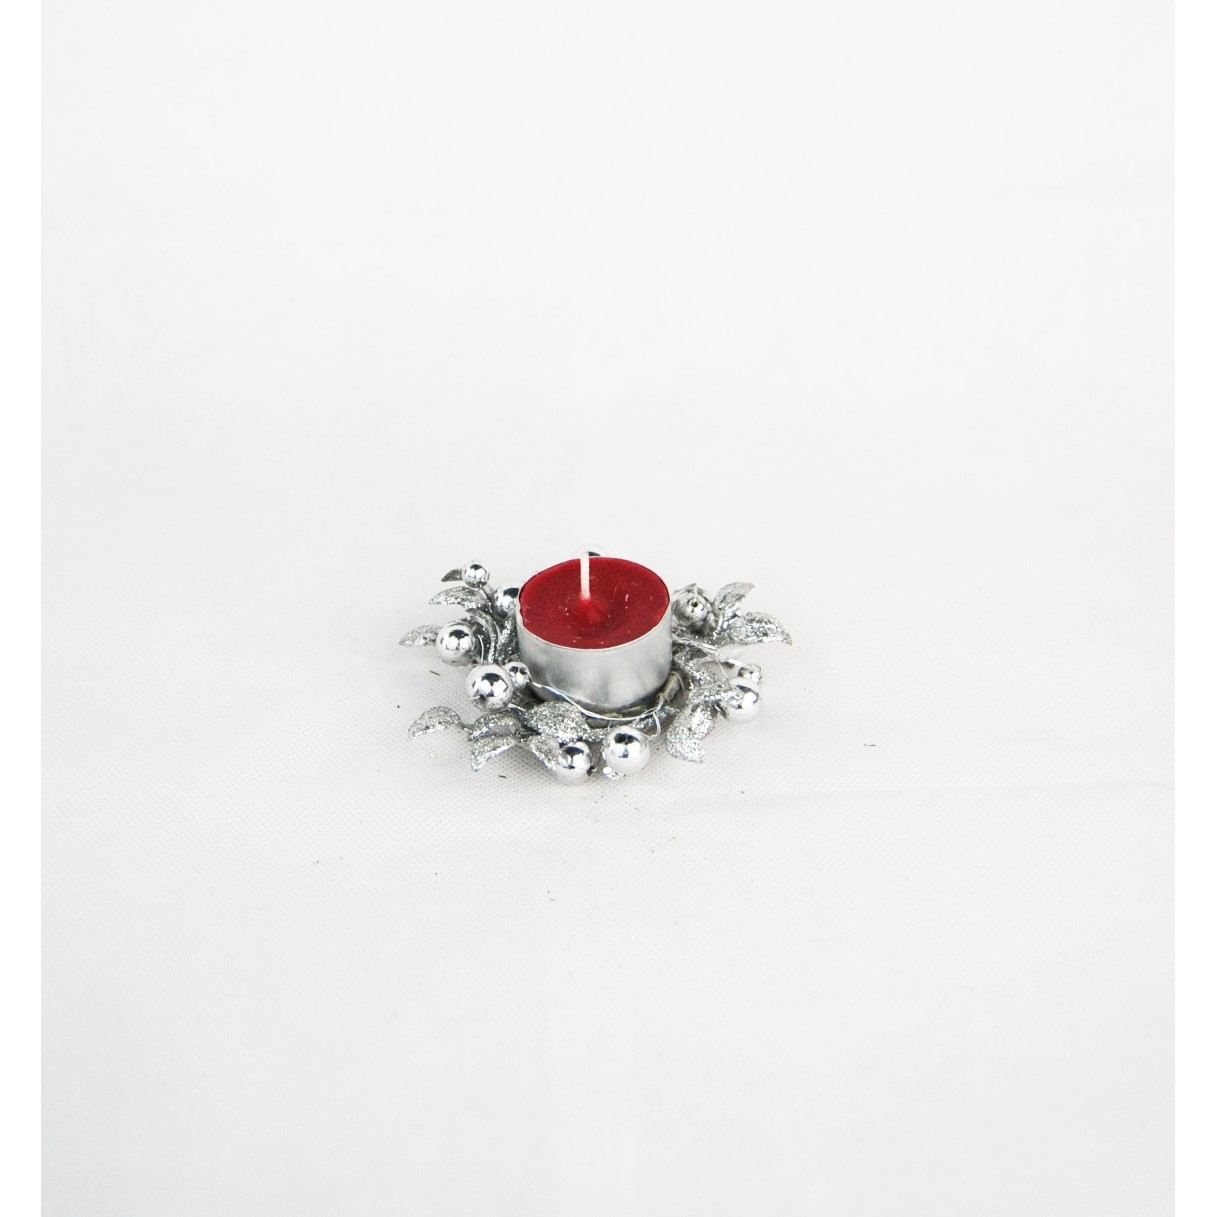 CANDLE RING 4cm BEAD LEAF SILVER